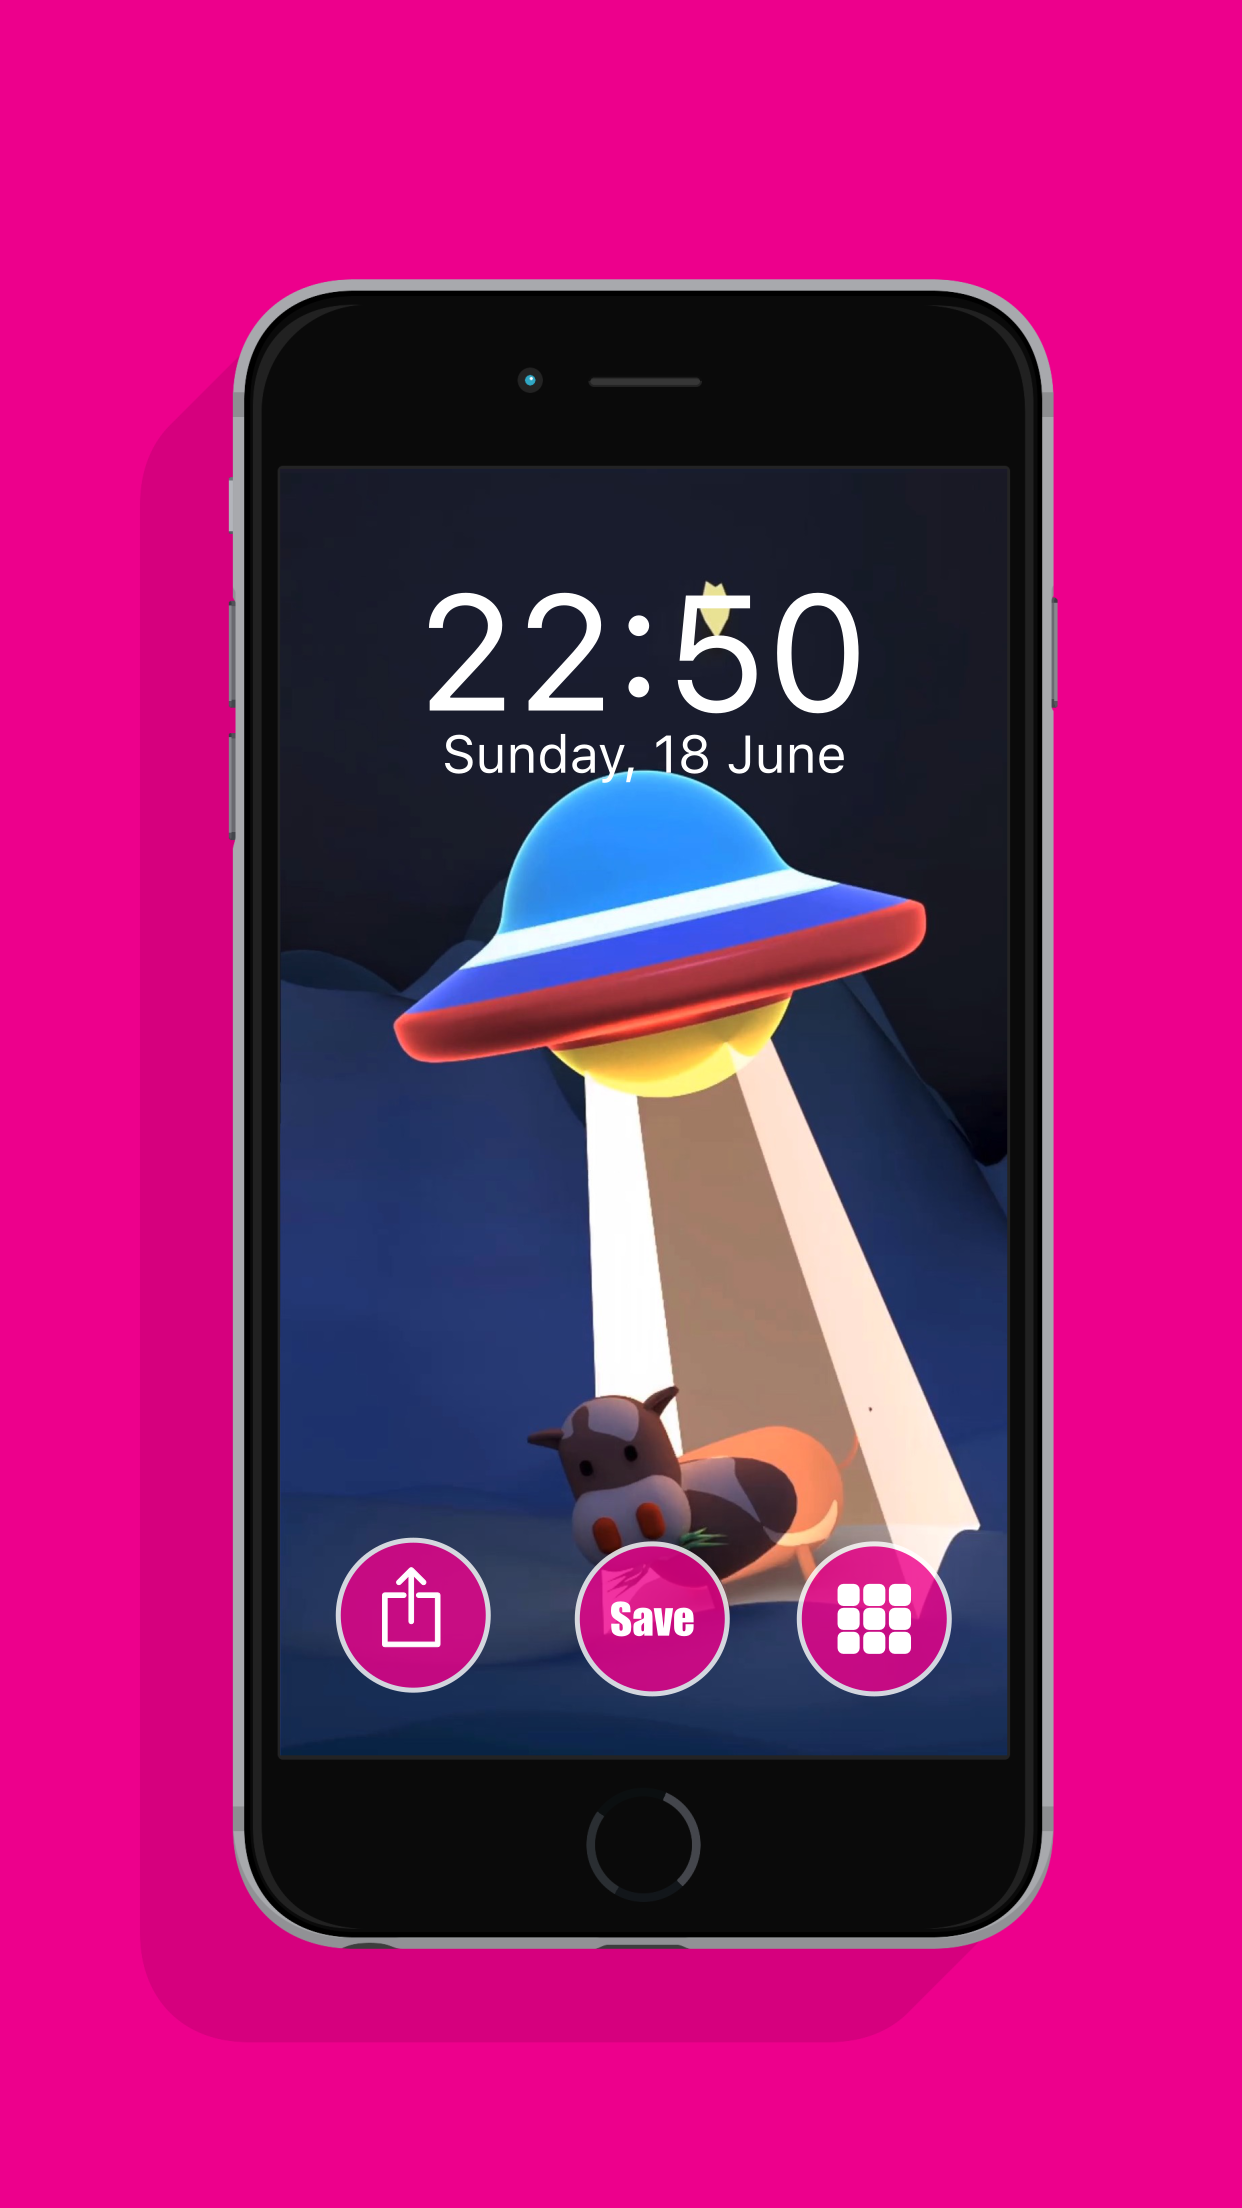 Live Wallpapers App For 3d Touch iPhone iOS 12 In App